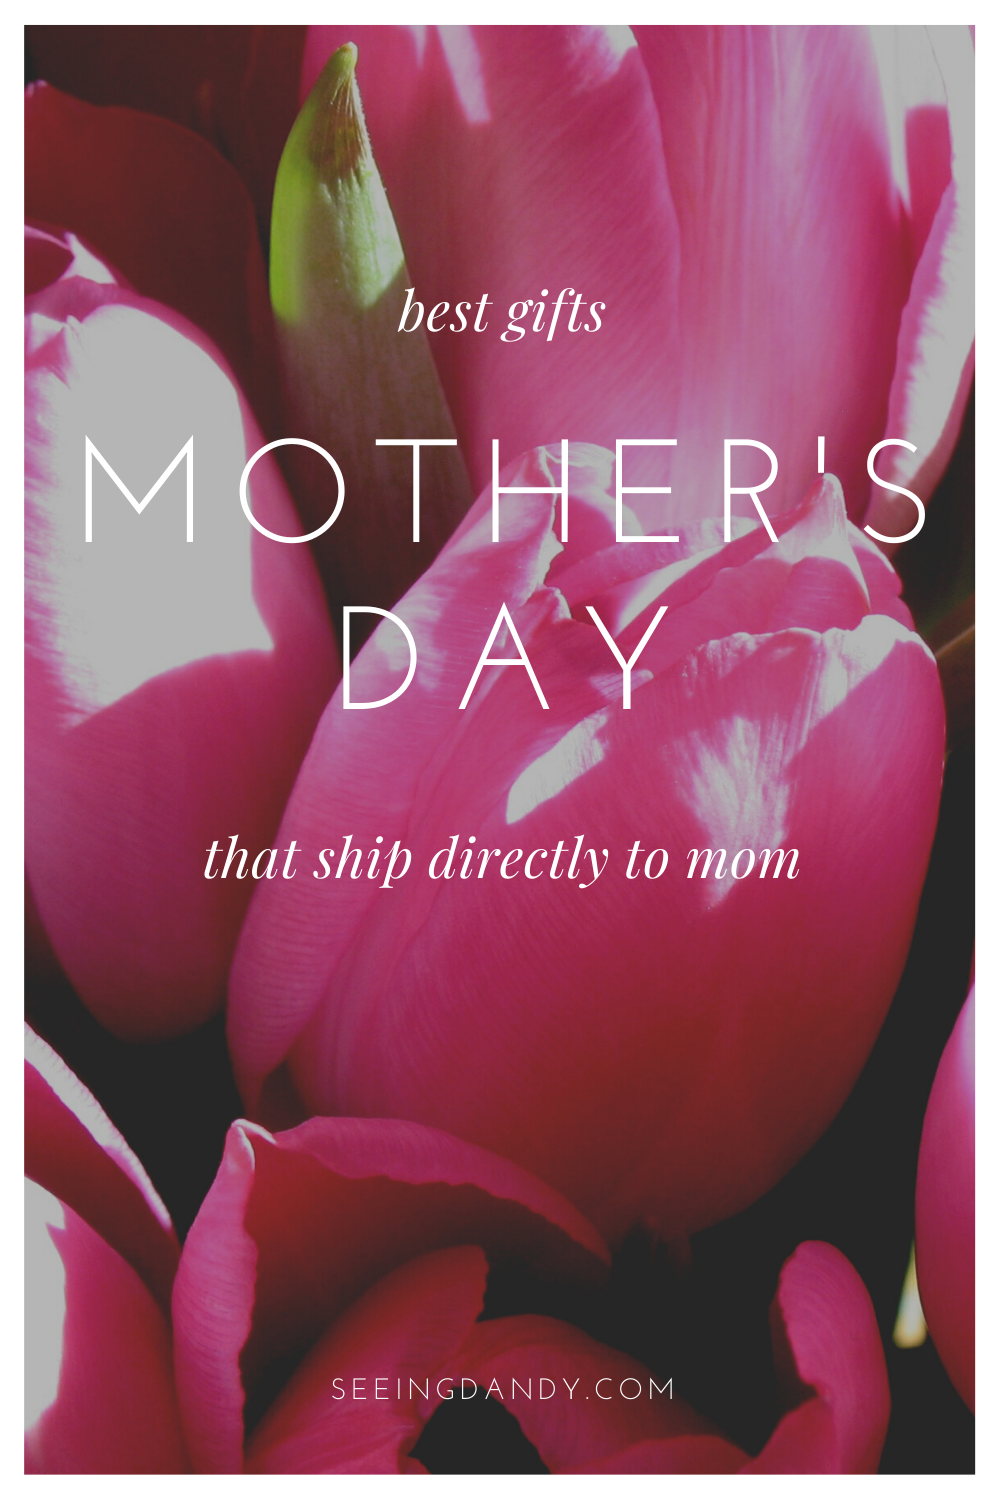 Best Mothers Day gifts that ship directly to mom during quarantine